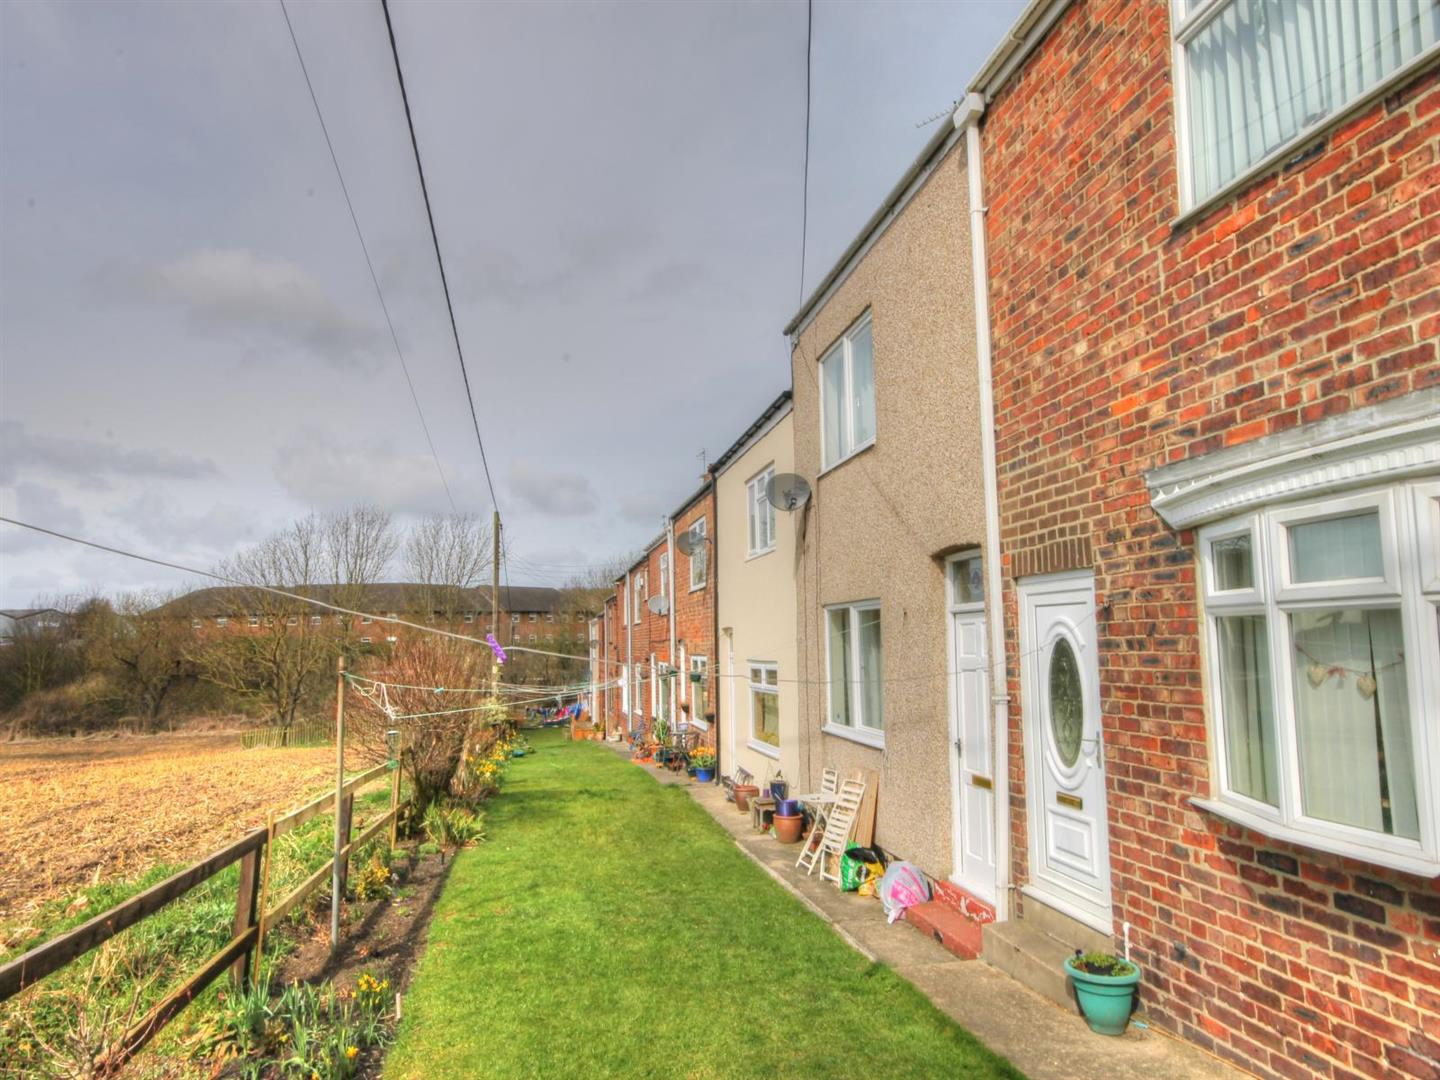 2 Bedrooms Terraced House for sale in Edna Street, Bowburn, Durham